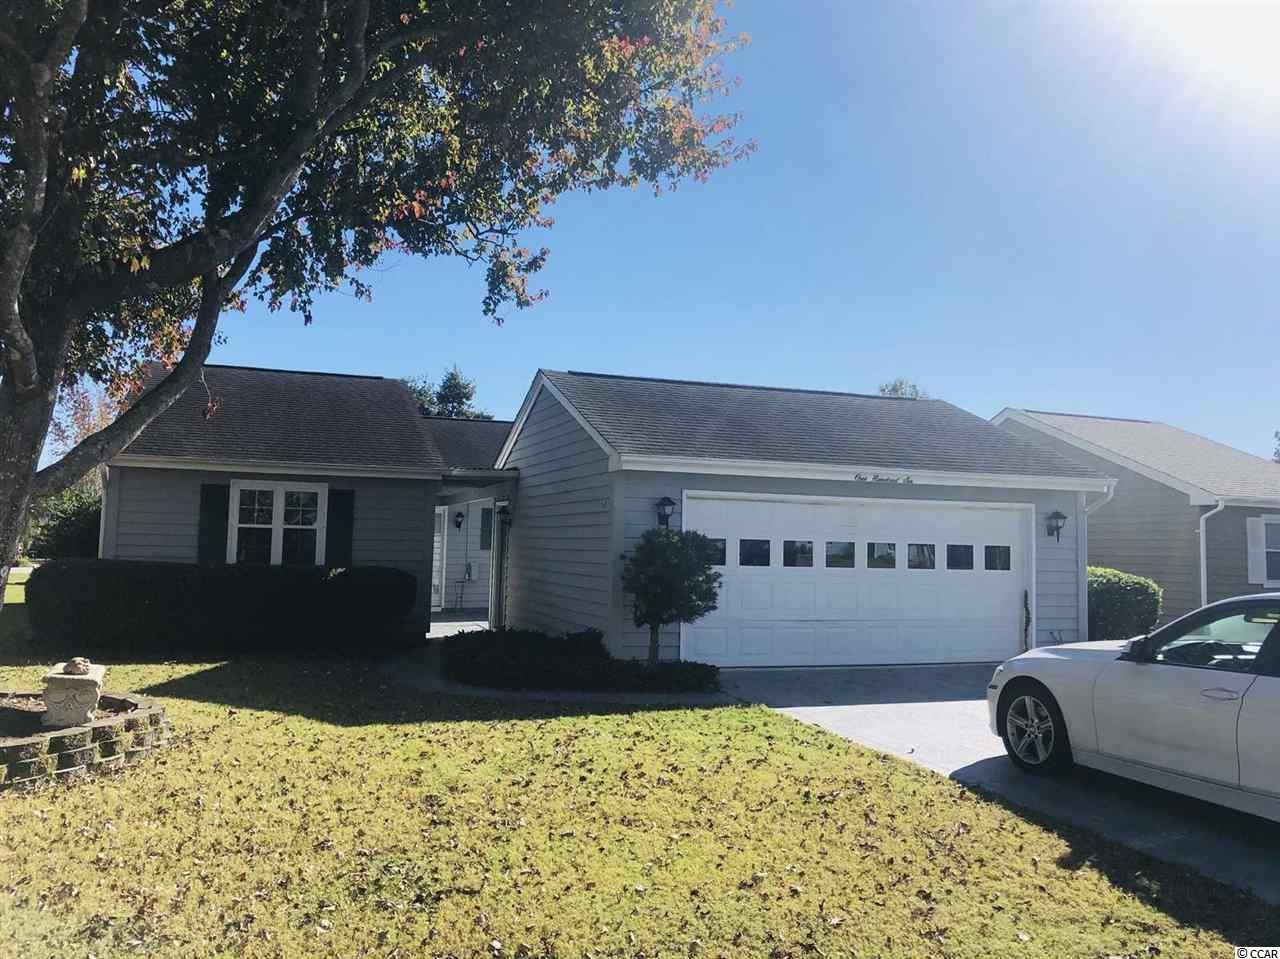 Check out this 3 bedroom, corner house in the centrally located neighborhood of Island Green in the best school district in Myrtle Beach. This very well maintained 3 bedroom house features a 2 car garage, a private courtyard. Currently best value in the community. Located in the conveniently located community in Myrtle Beach minutes away from Myrtle Beach and Murrells Inlet Beaches. Very easy to show. Don't miss your chance to schedule your private showing.